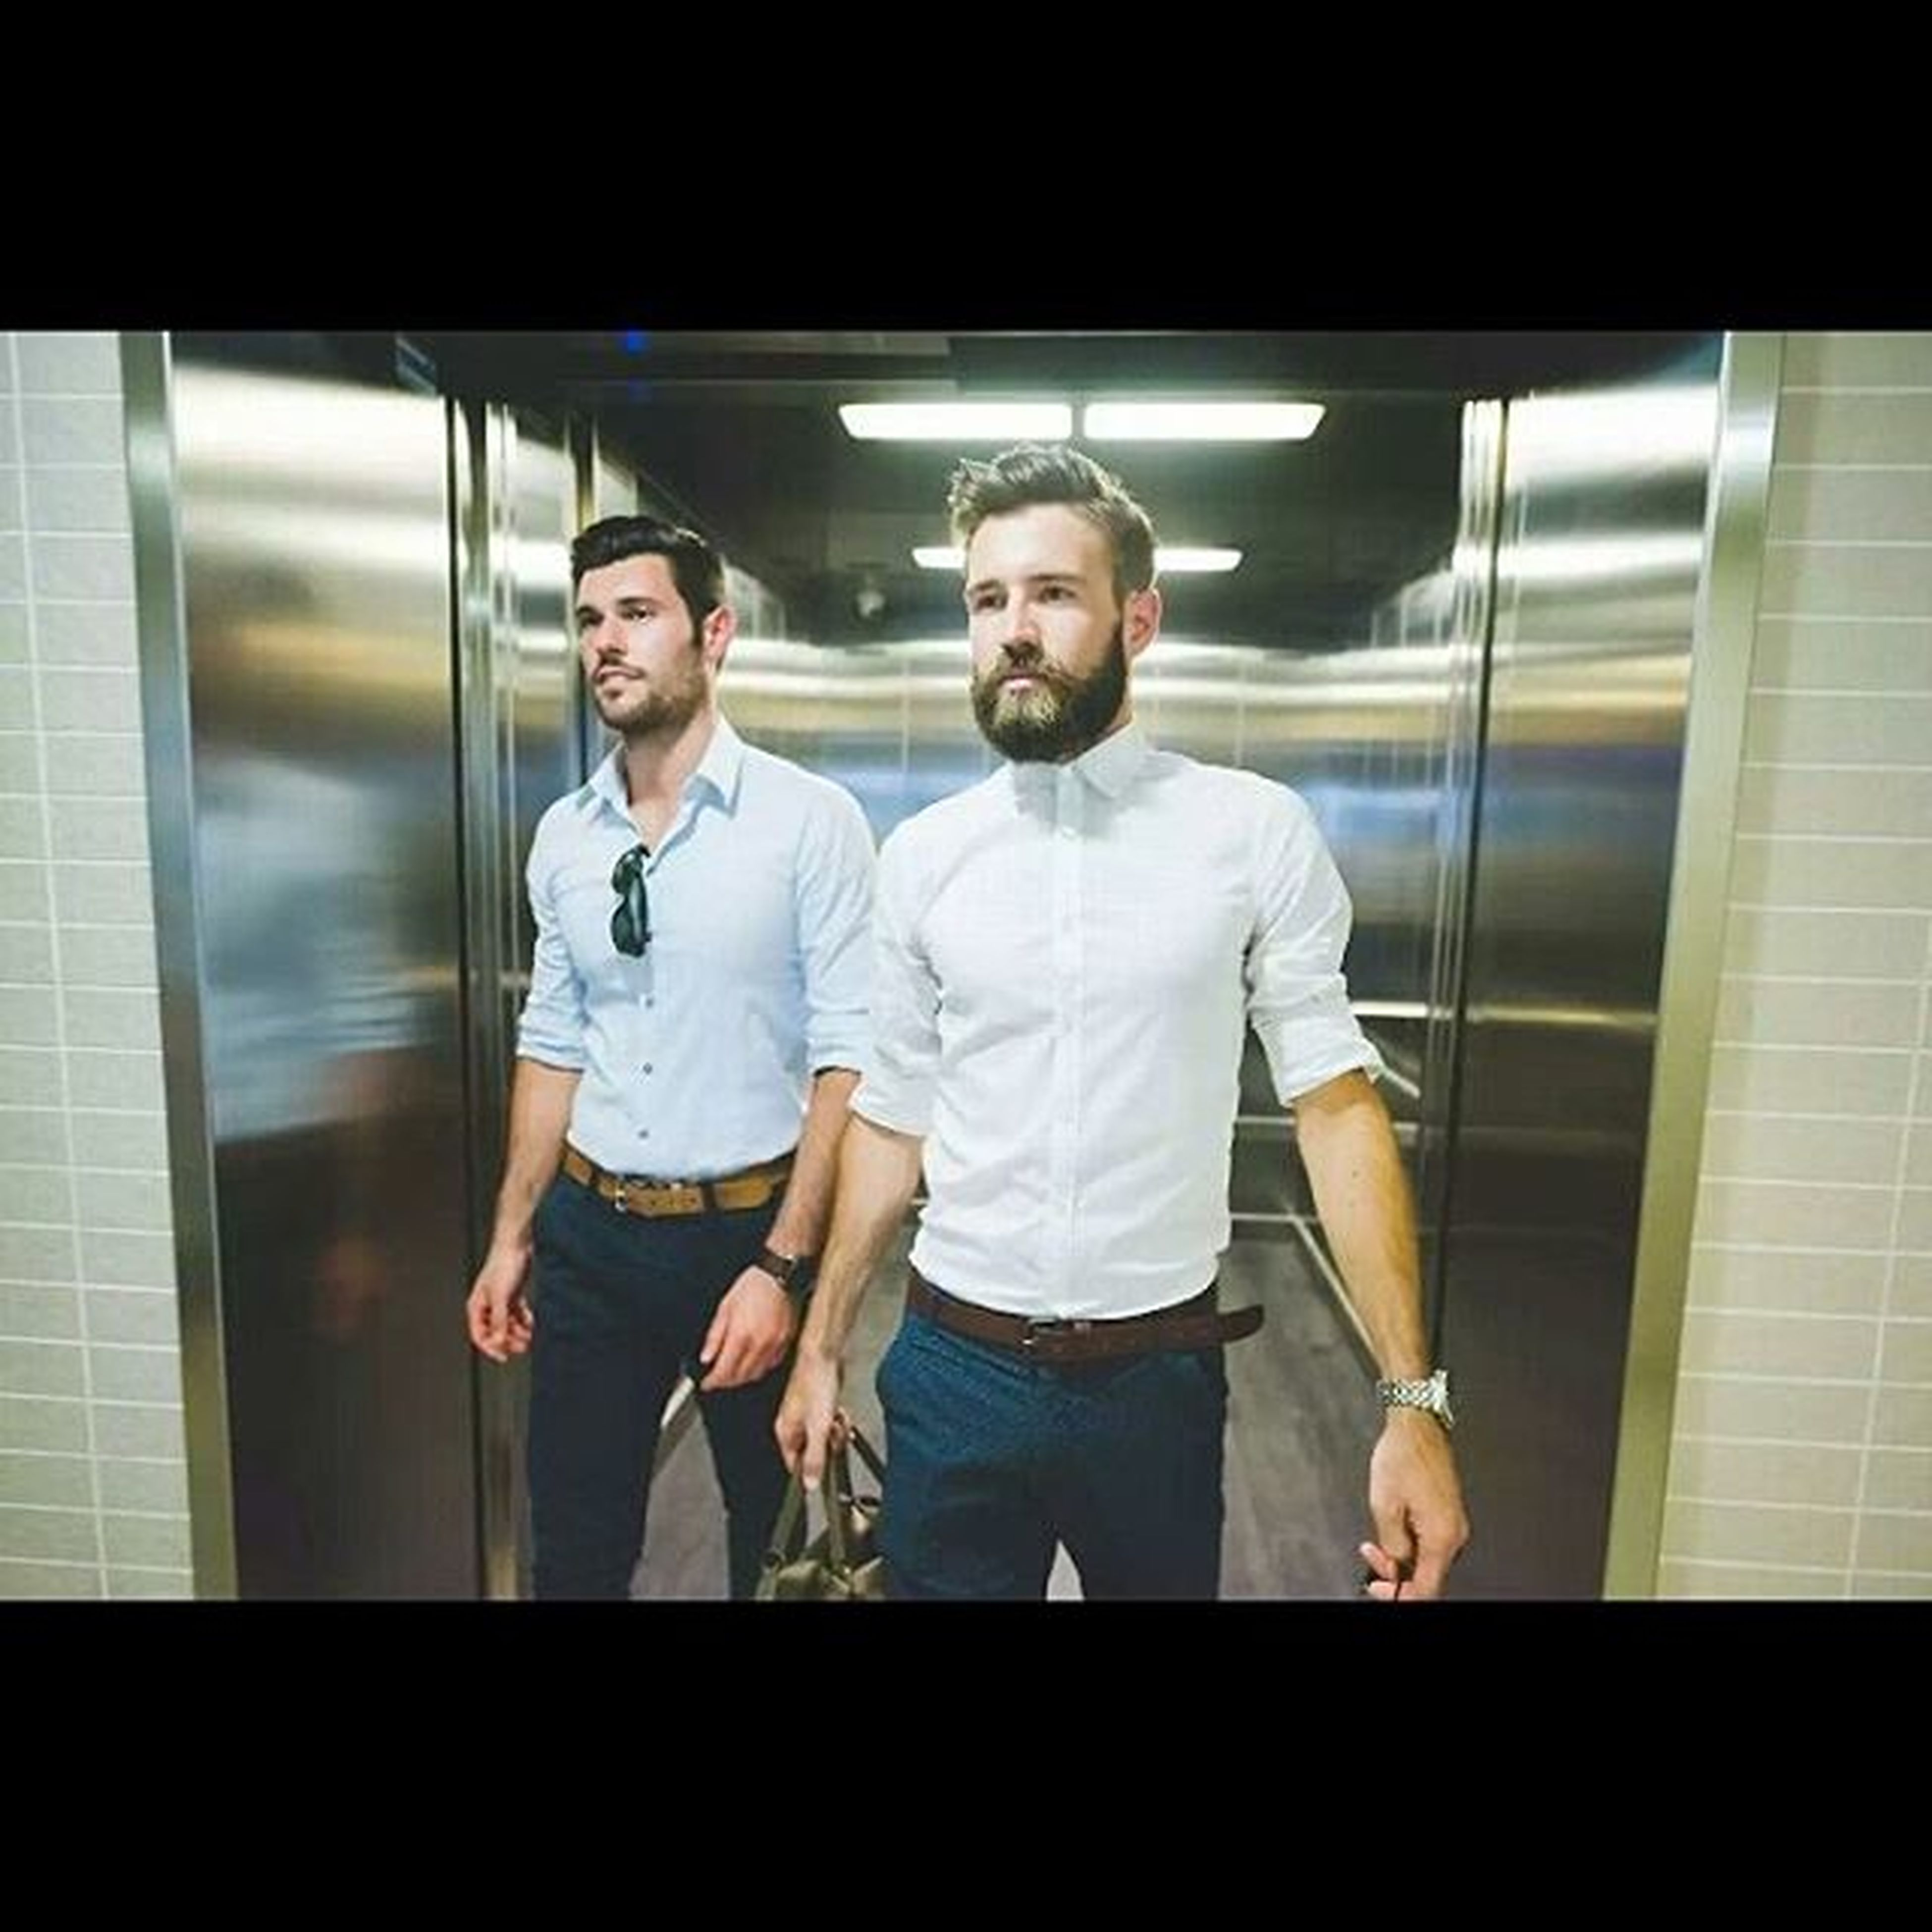 • www.eugeniomarongiu.it • from my last shooting with two handsome gentlemen models Michele and Luca Gentleman  Gentlemen Beard Beardculture Beardyland  Handsome Fashion Lifestyle Men Businessmen Beardgang Beards Bearded